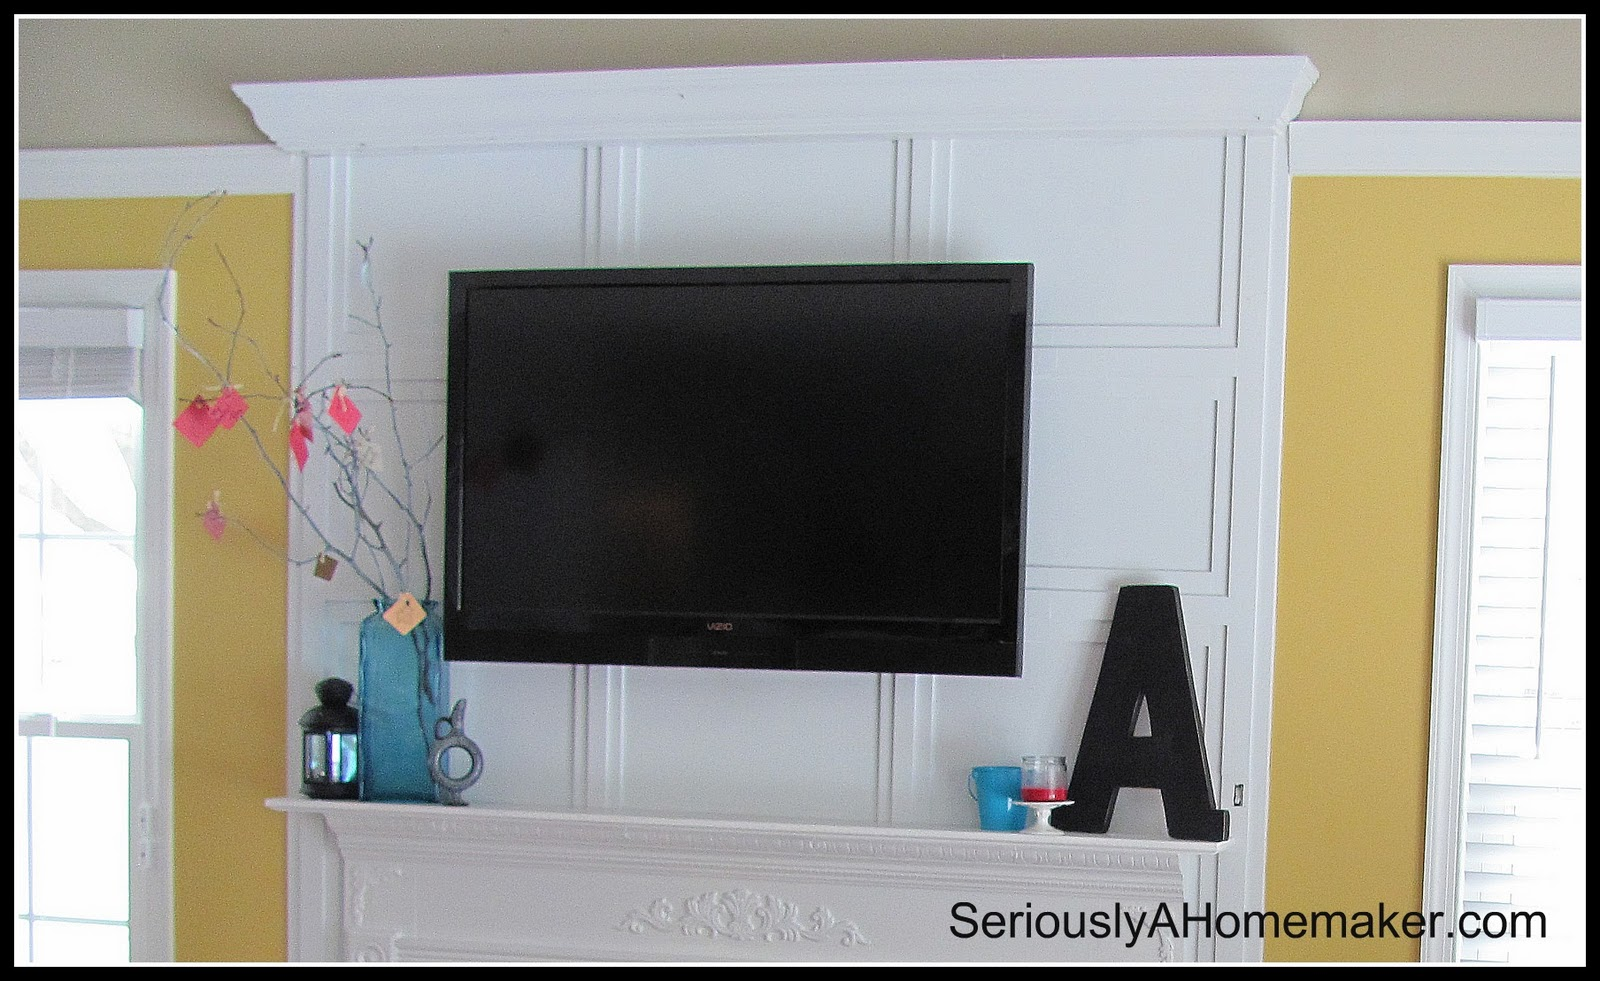 Remodelaholic 95 Ways To Hide Or Decorate Around The Tv Wiring Wall Plates How Cords In Trimwork Above Mantel Via Sawdust Girl